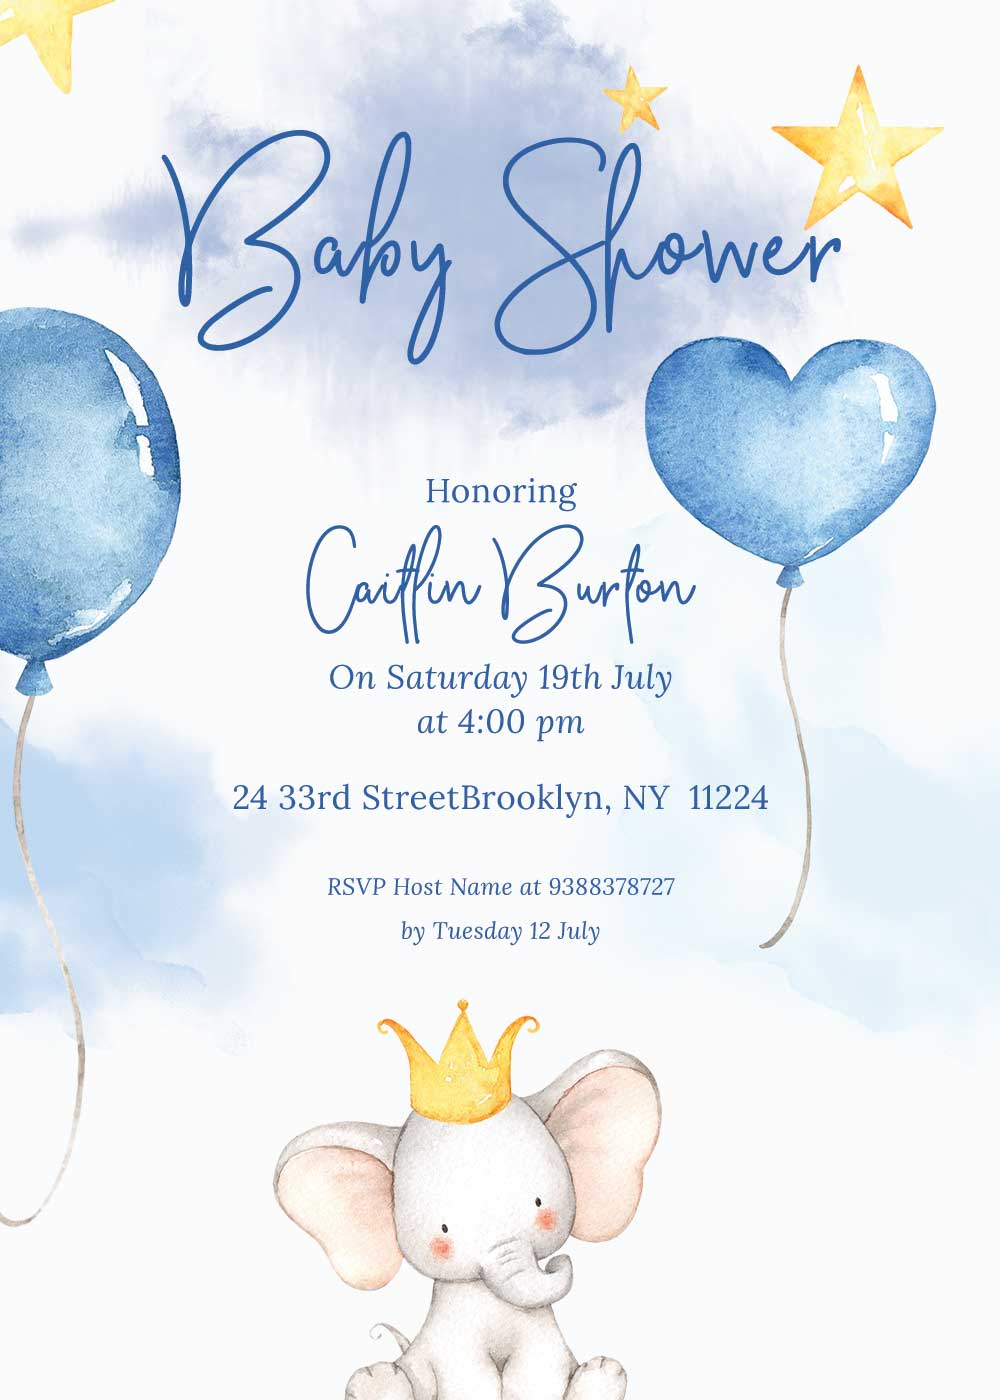 Baby shower invitations - Elephant theme